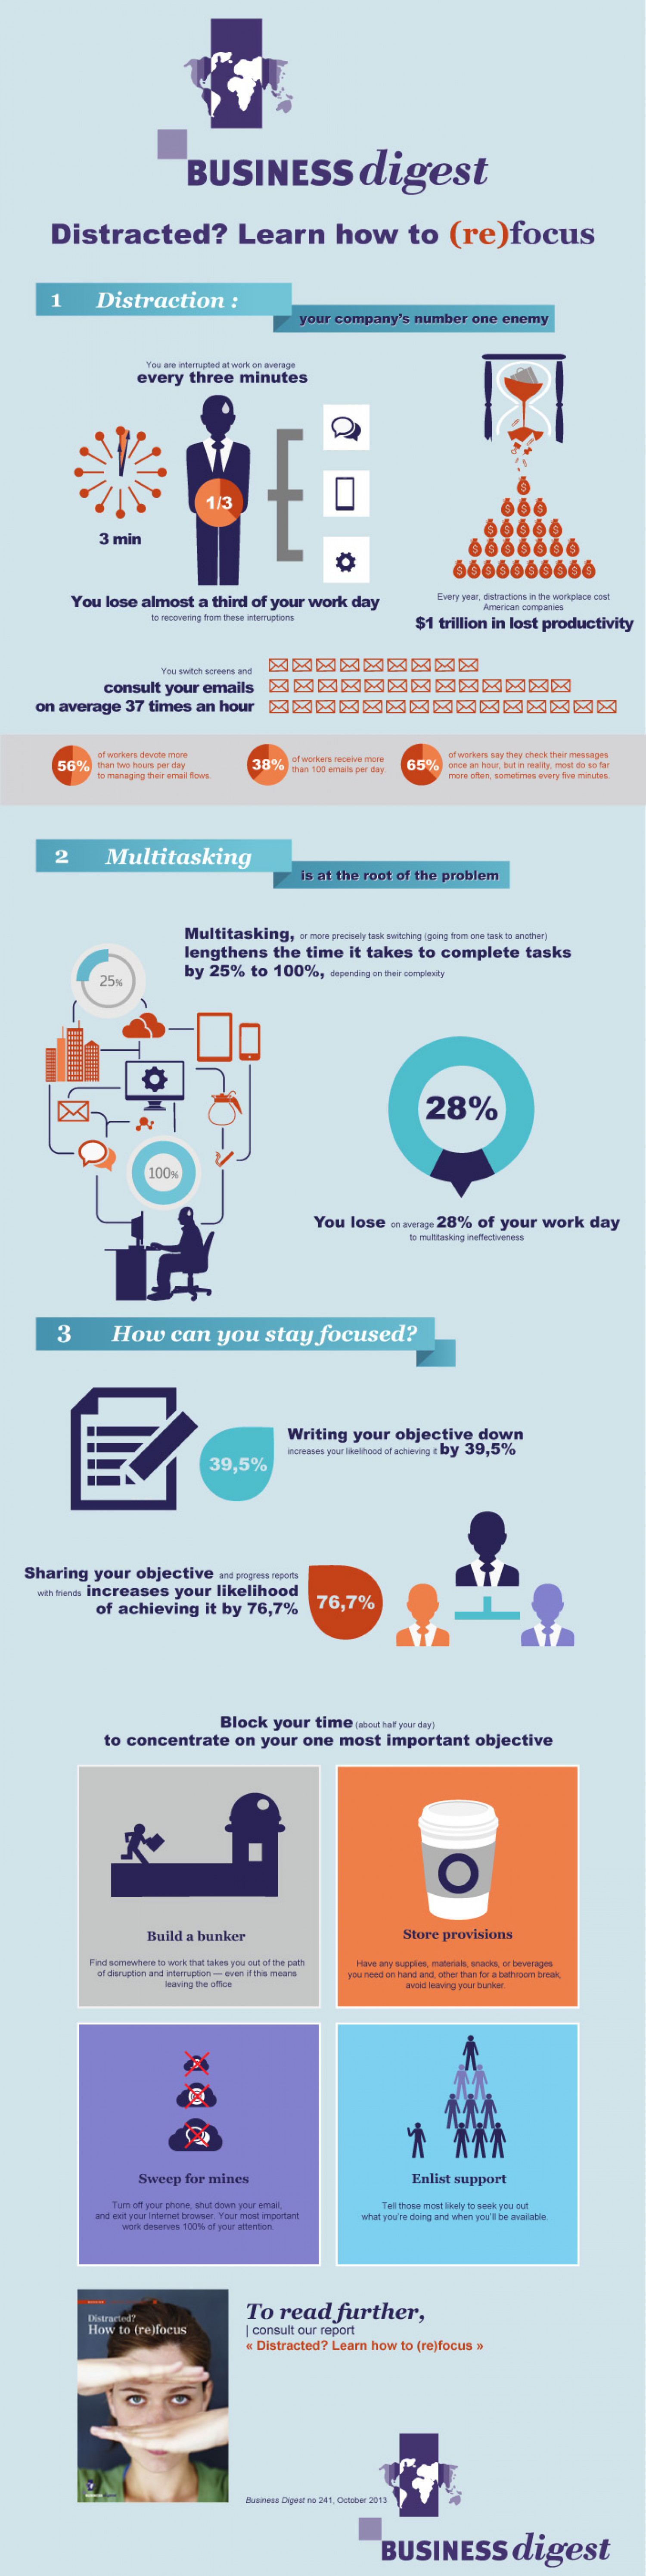 Distracted? Learn how to (re)focus Infographic